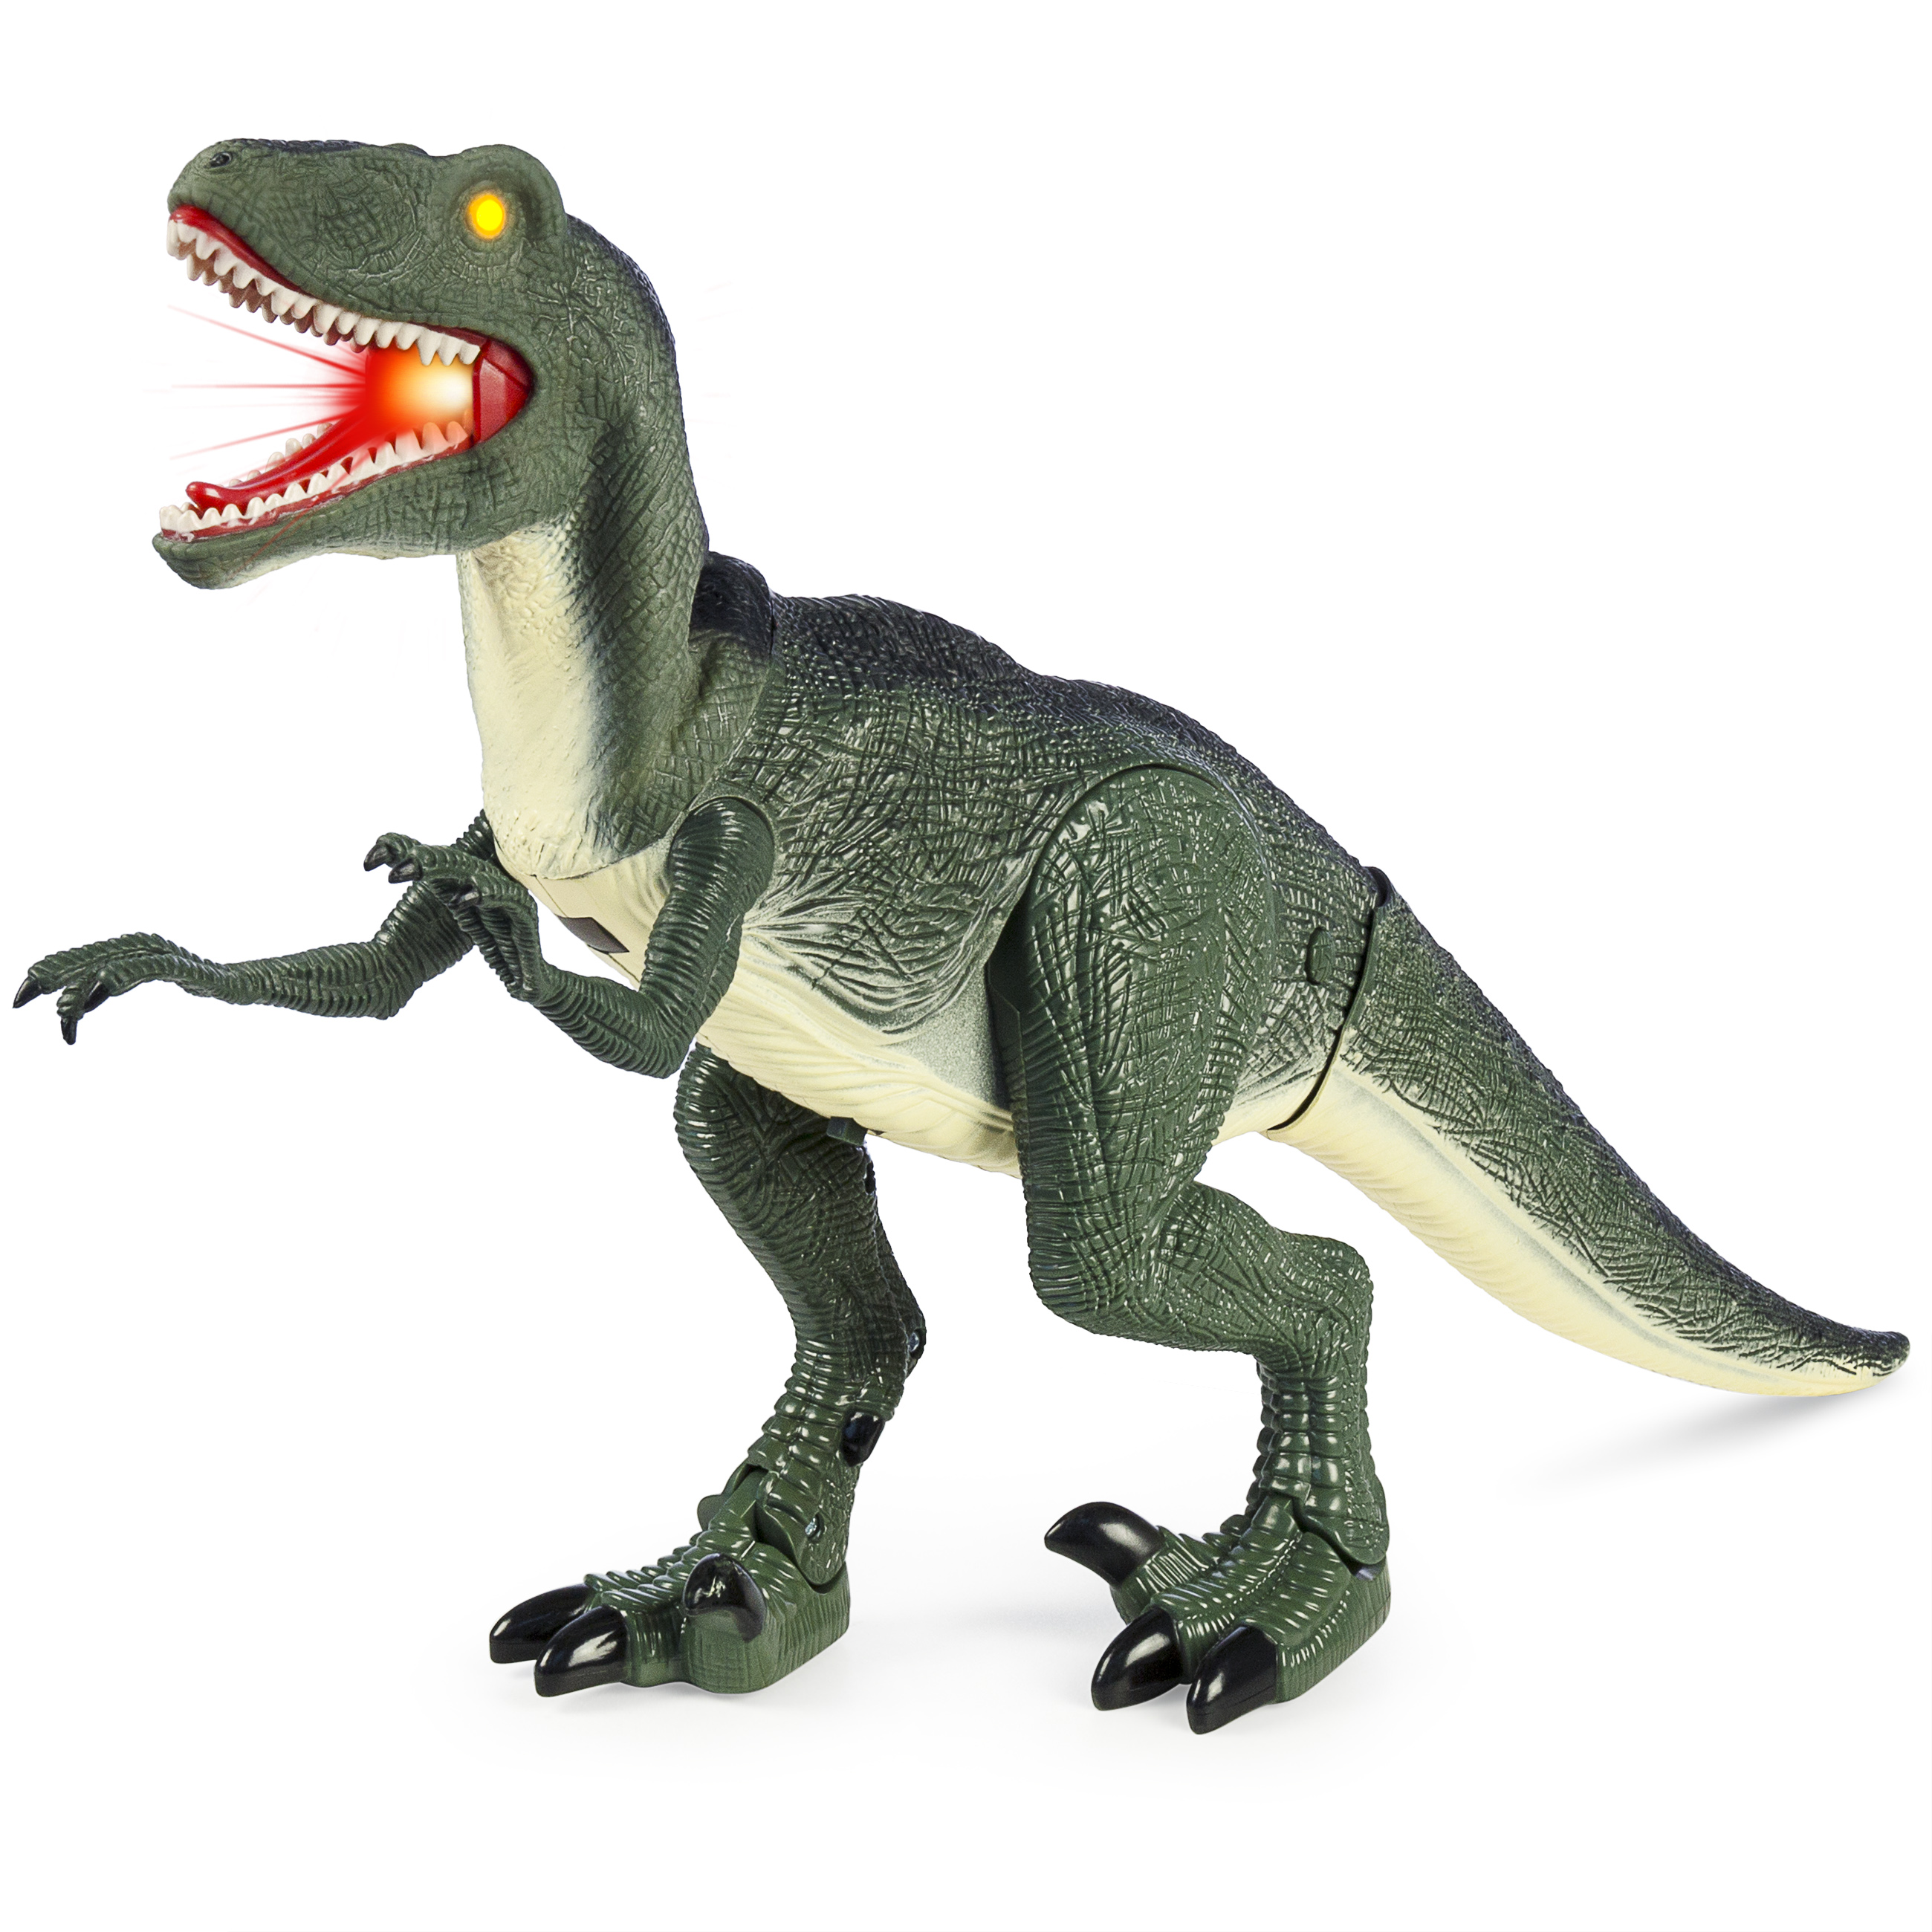 Best Choice Products Velociraptor 21in Large Walking Toy Dinosaur w  Real Sound and Lights by Best Choice Products